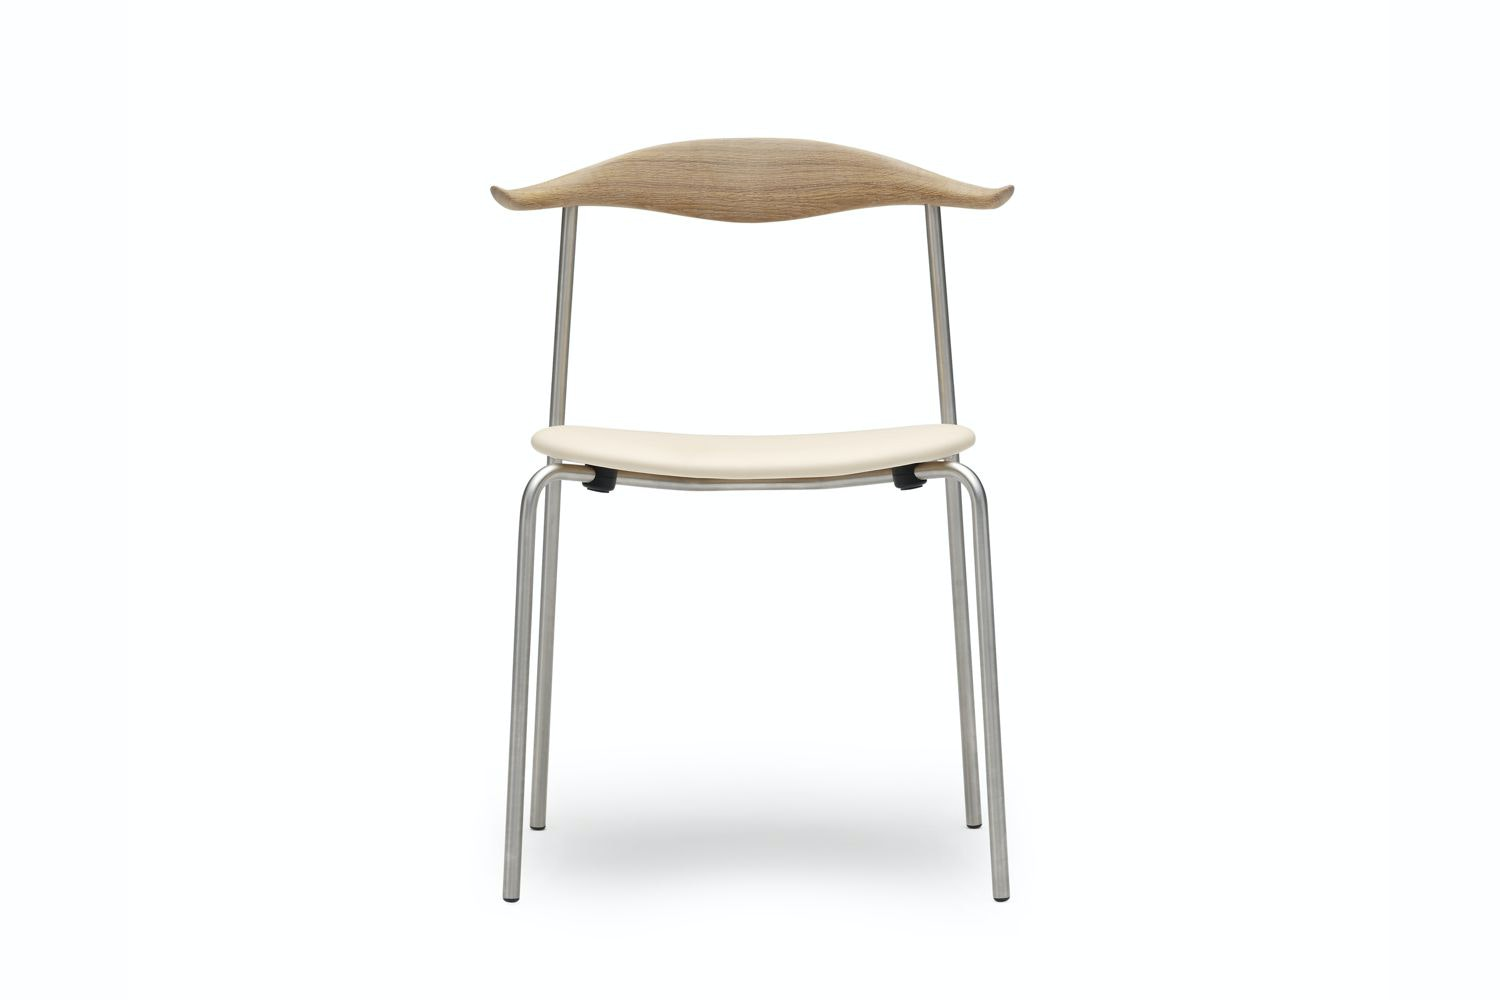 CH88P by Hans J. Wegner for Carl Hansen & Son